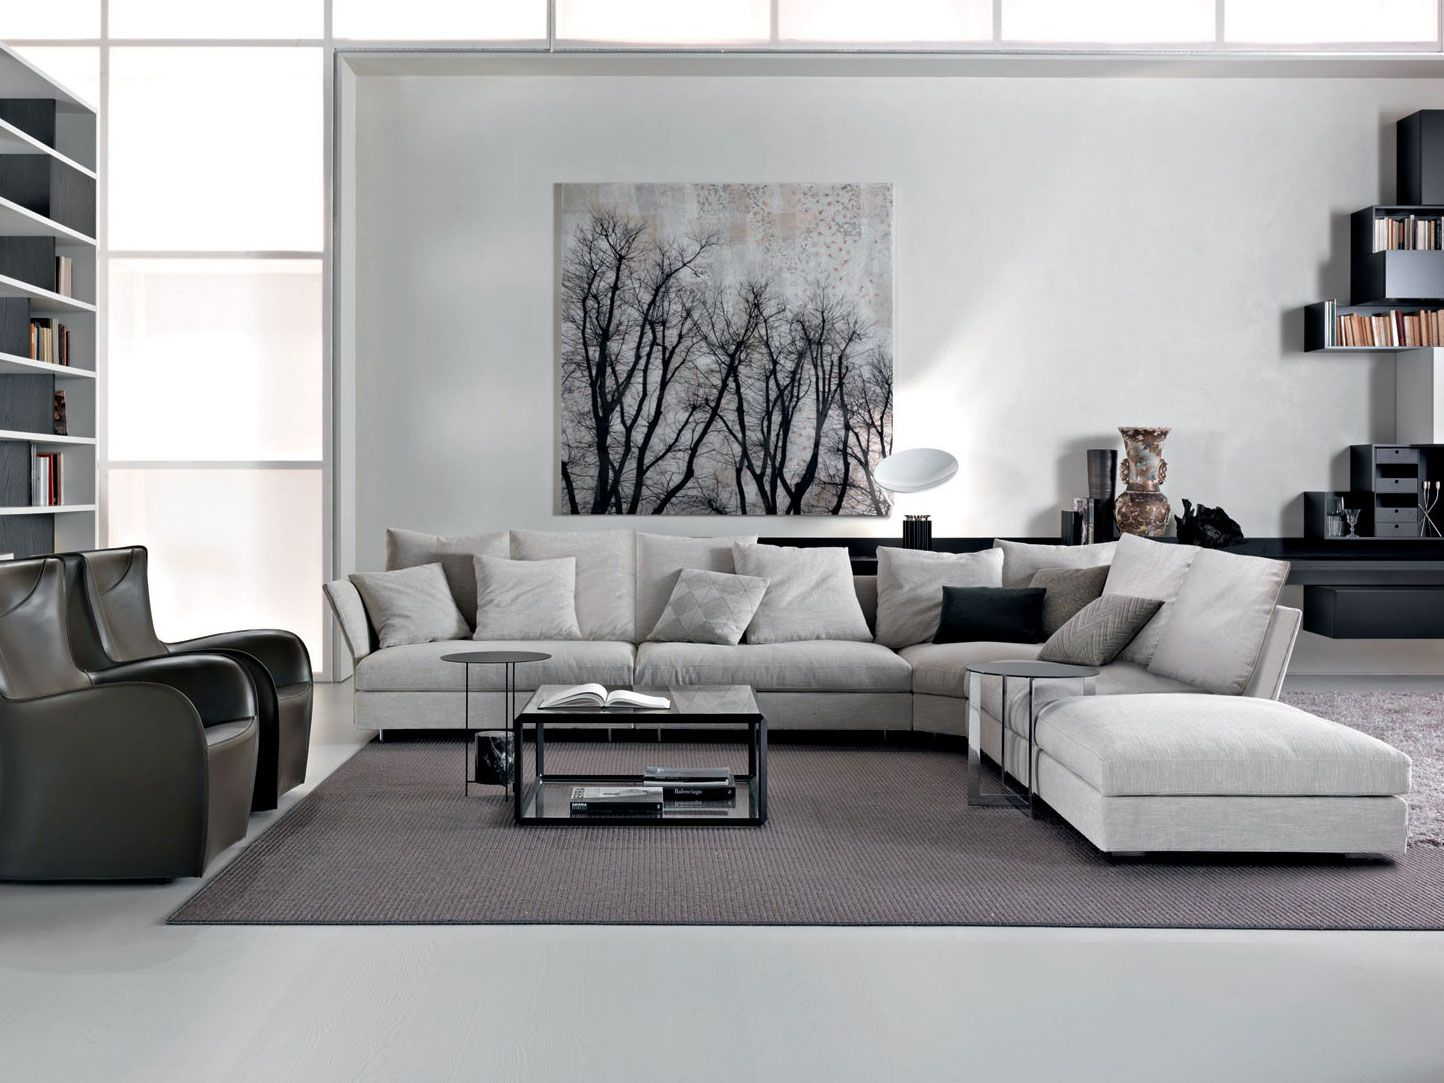 Sofa Set Design For Living Room The Holiday Sofa Takes Centre Stage Along With Shelving Tables